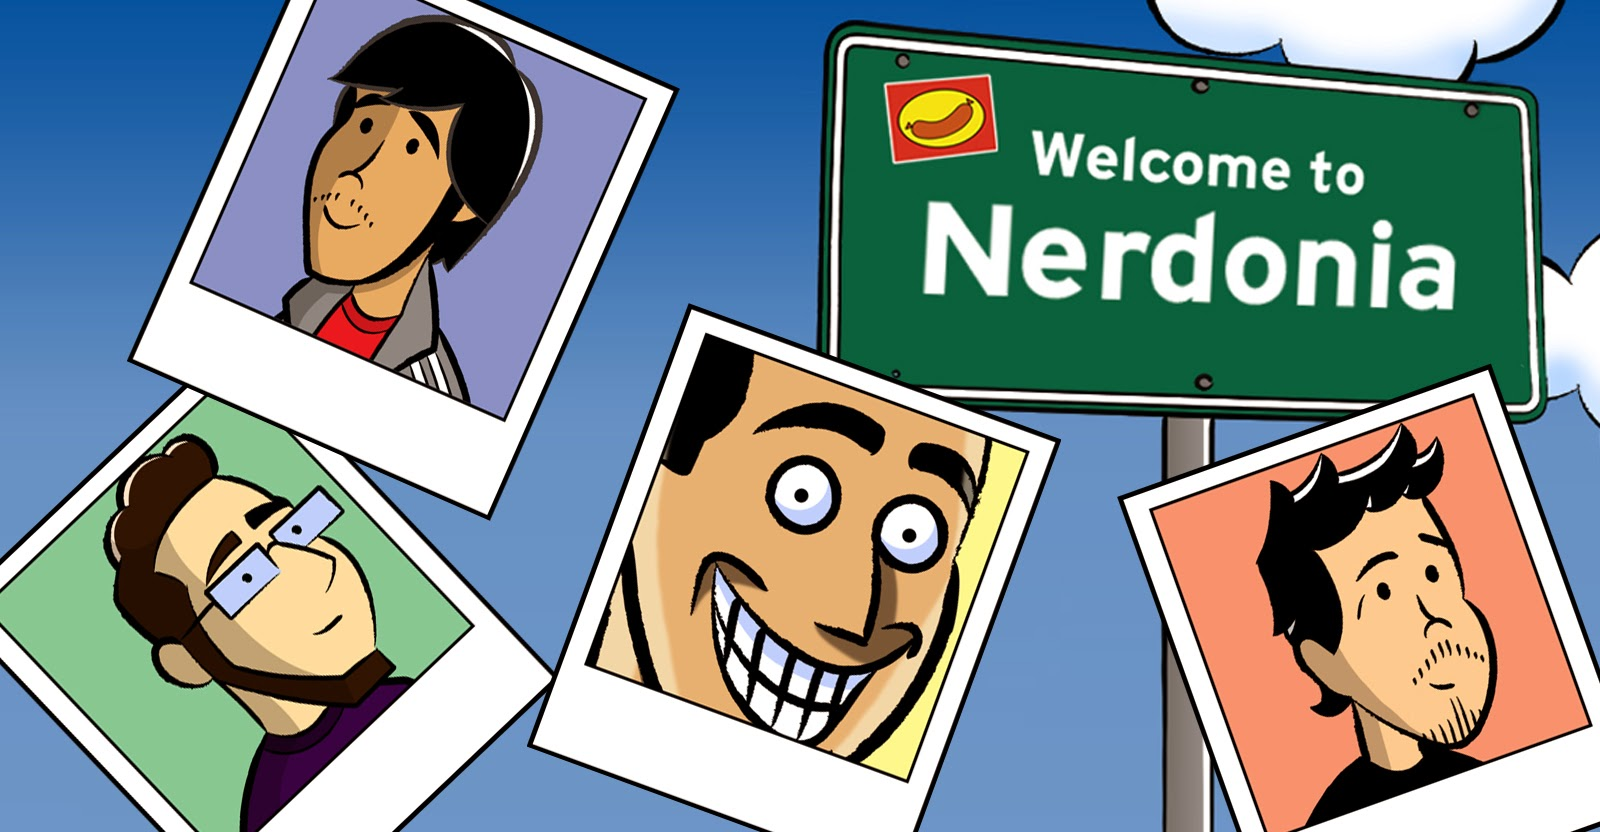 Nerdmigos Welcome to Nerdonia